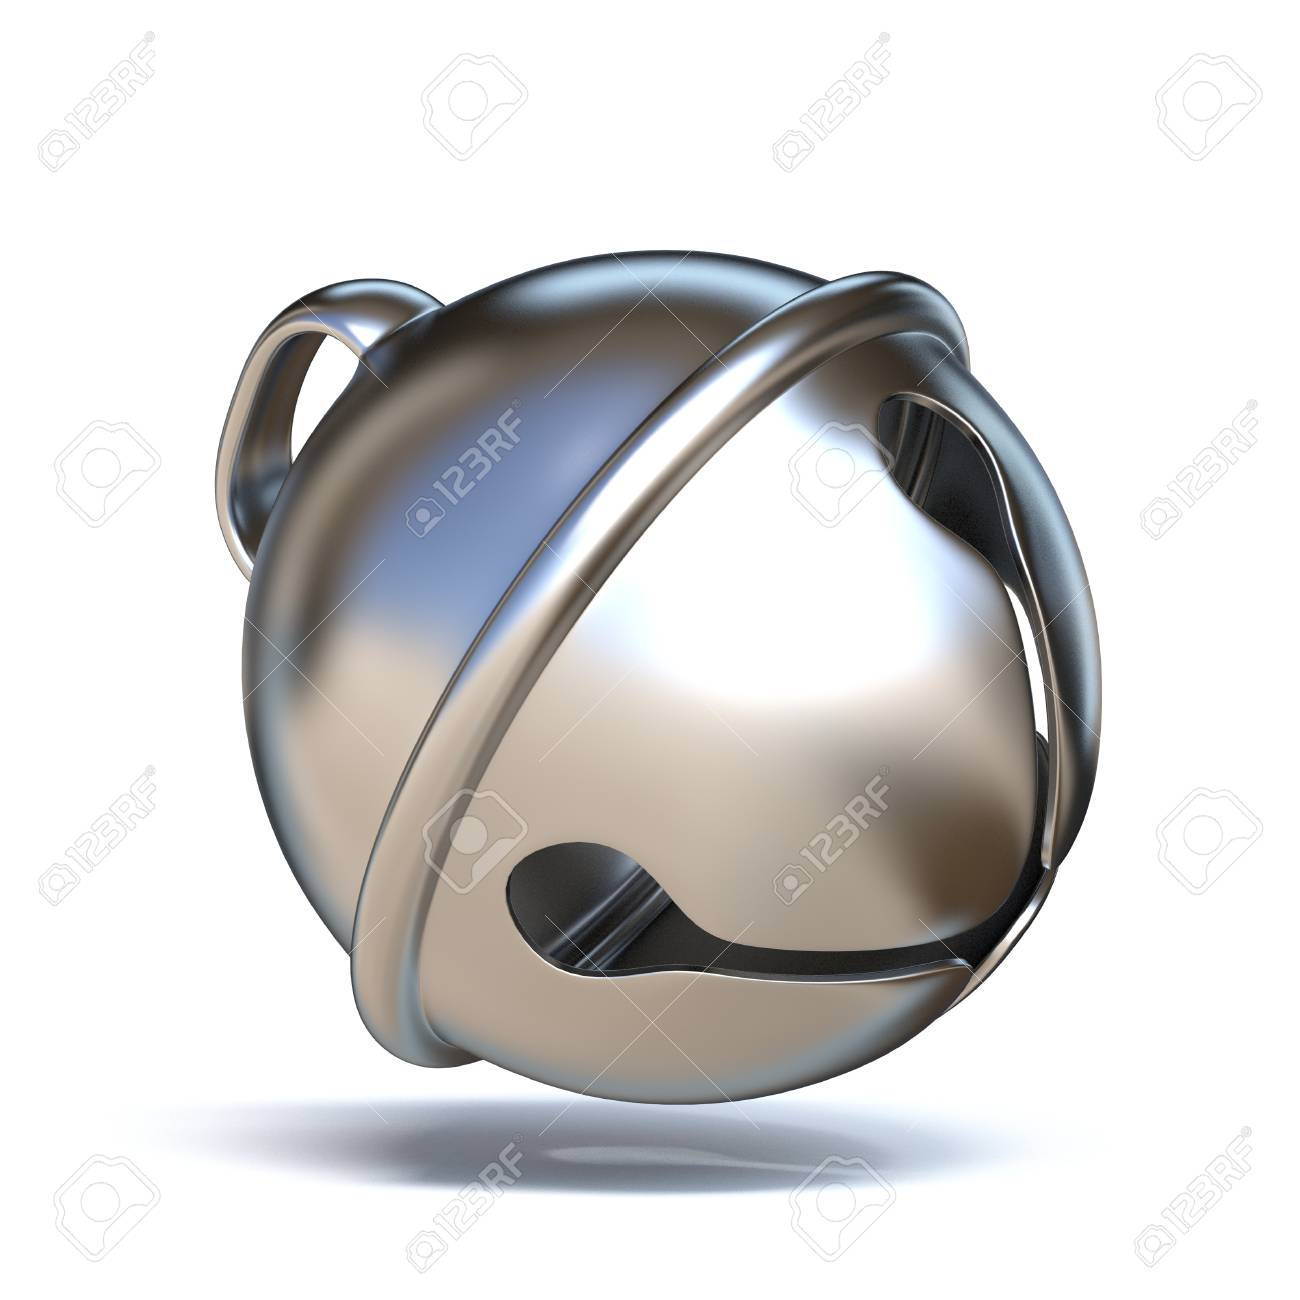 Silver sleigh bell 3D render illustration isolated on white background - 107946551